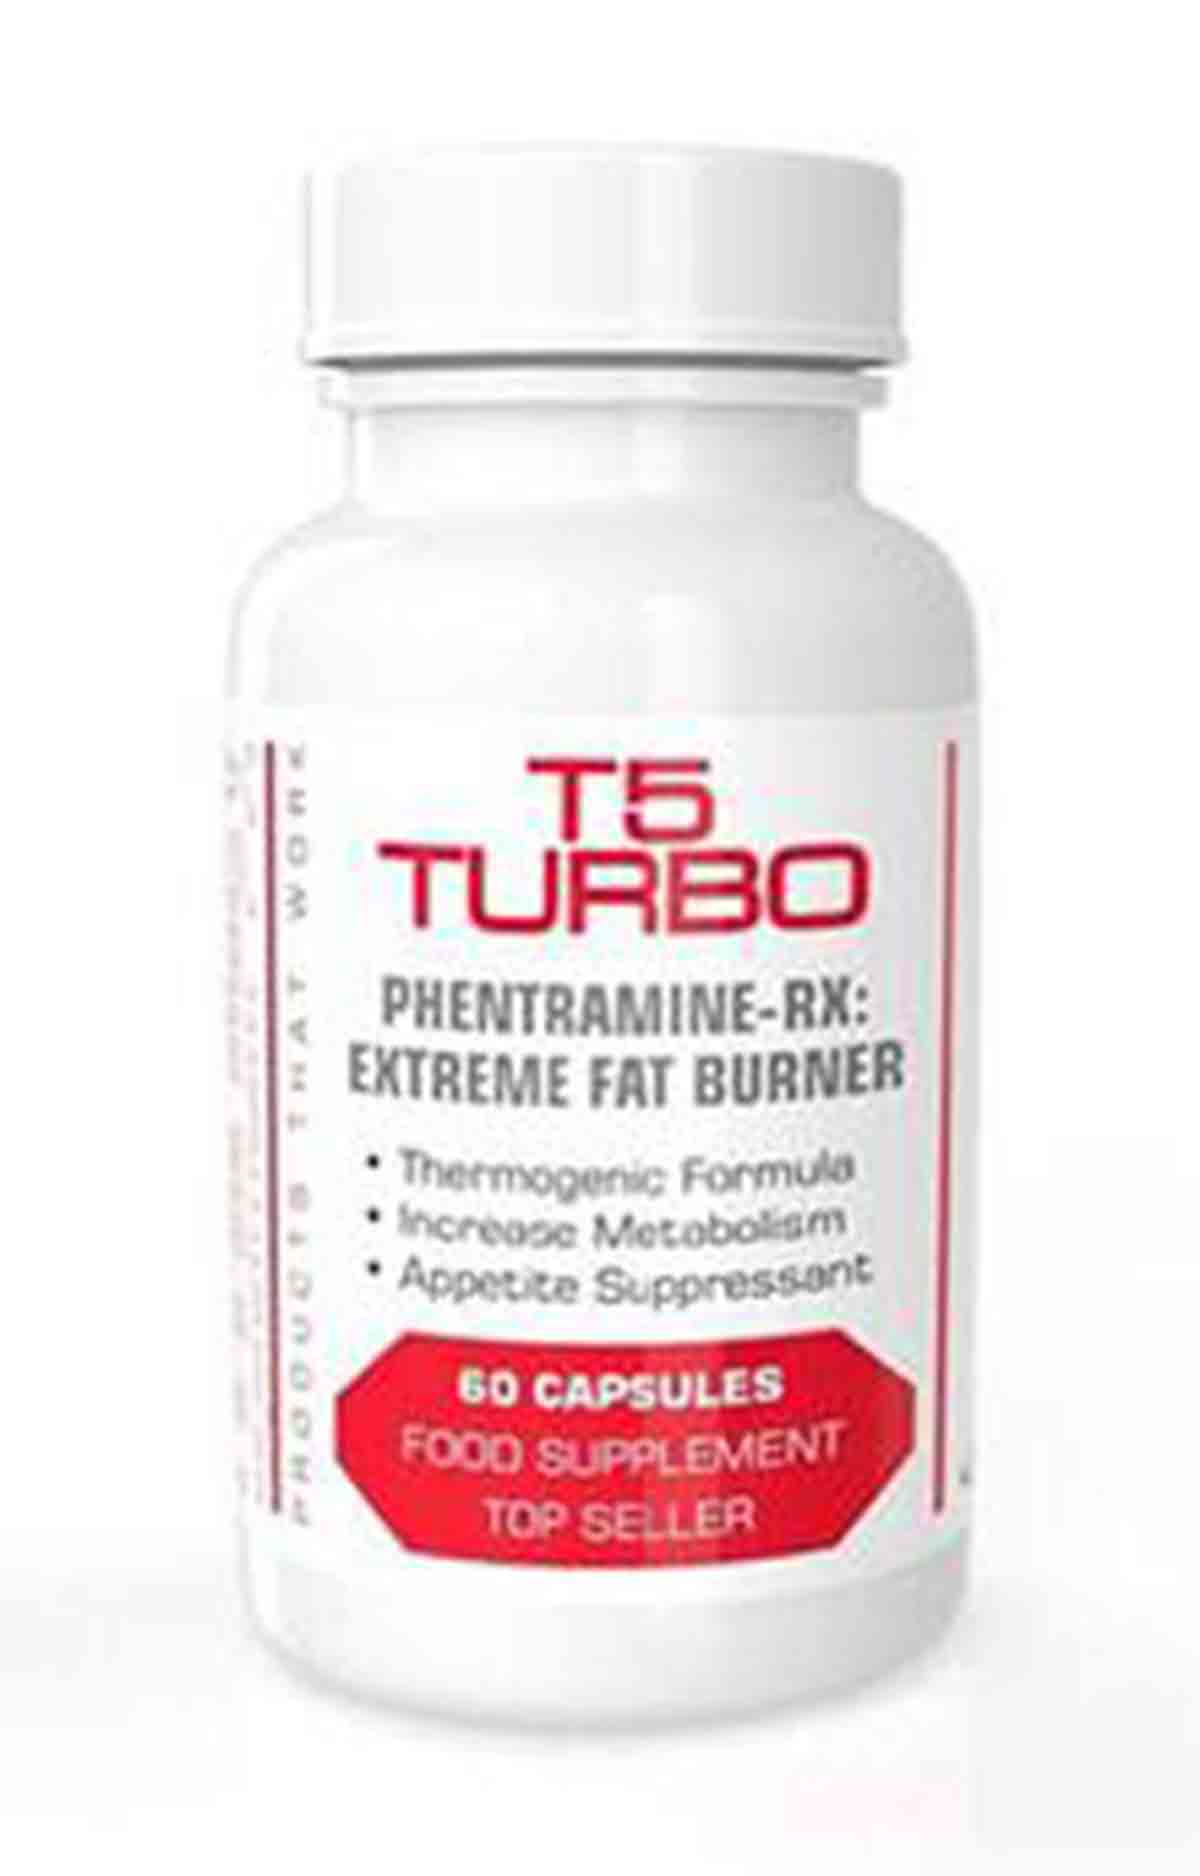 Optimum Fx T5 Turbo Phentramine-RX